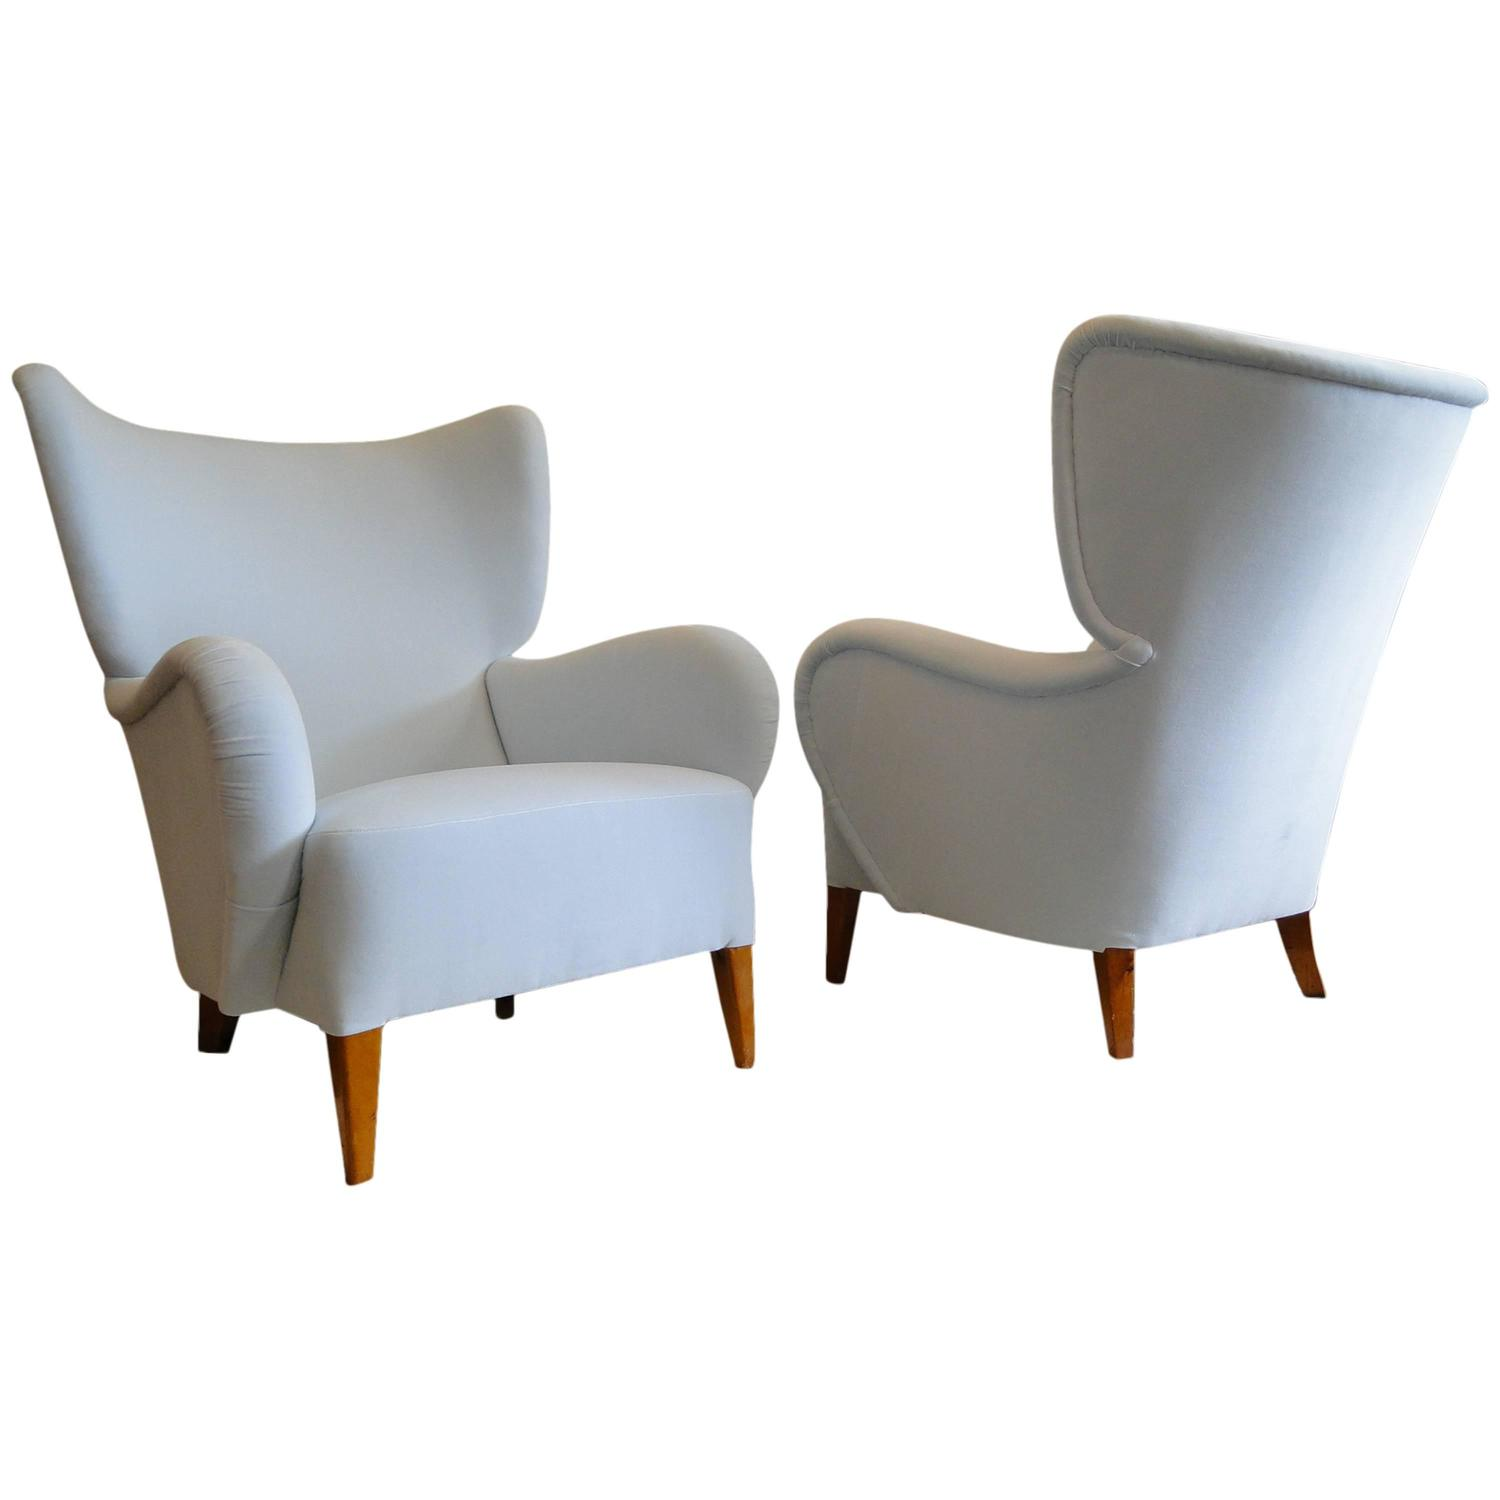 Very Impressive portraiture of Pair of Scandinavian High Back Armchairs For Sale at 1stdibs with #73431C color and 1500x1500 pixels